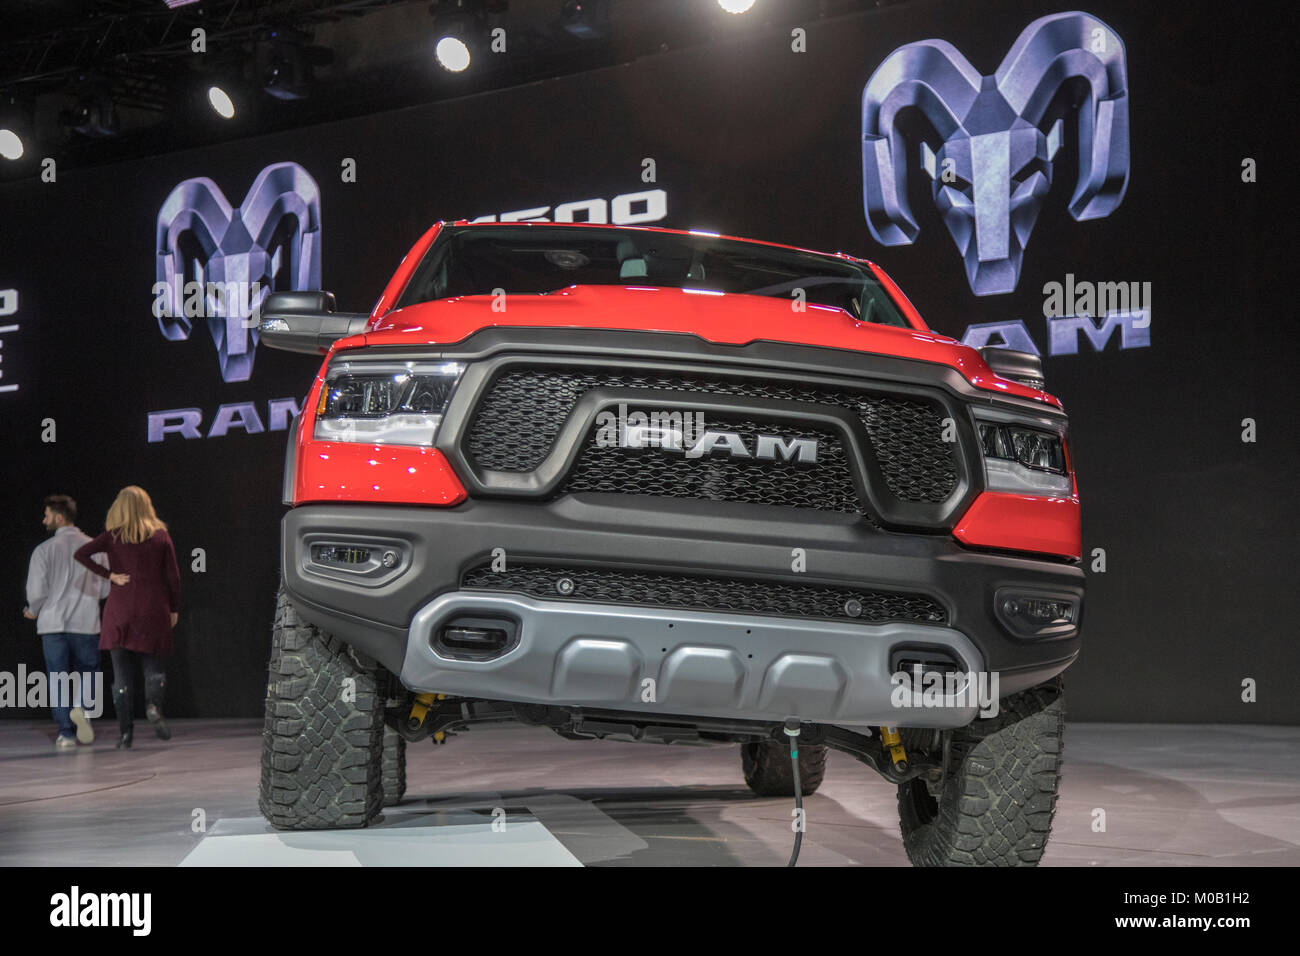 Detroit, Michigan - The 2019 Dodge Ram 1500 on display at the North American International Auto Show. - Stock Image